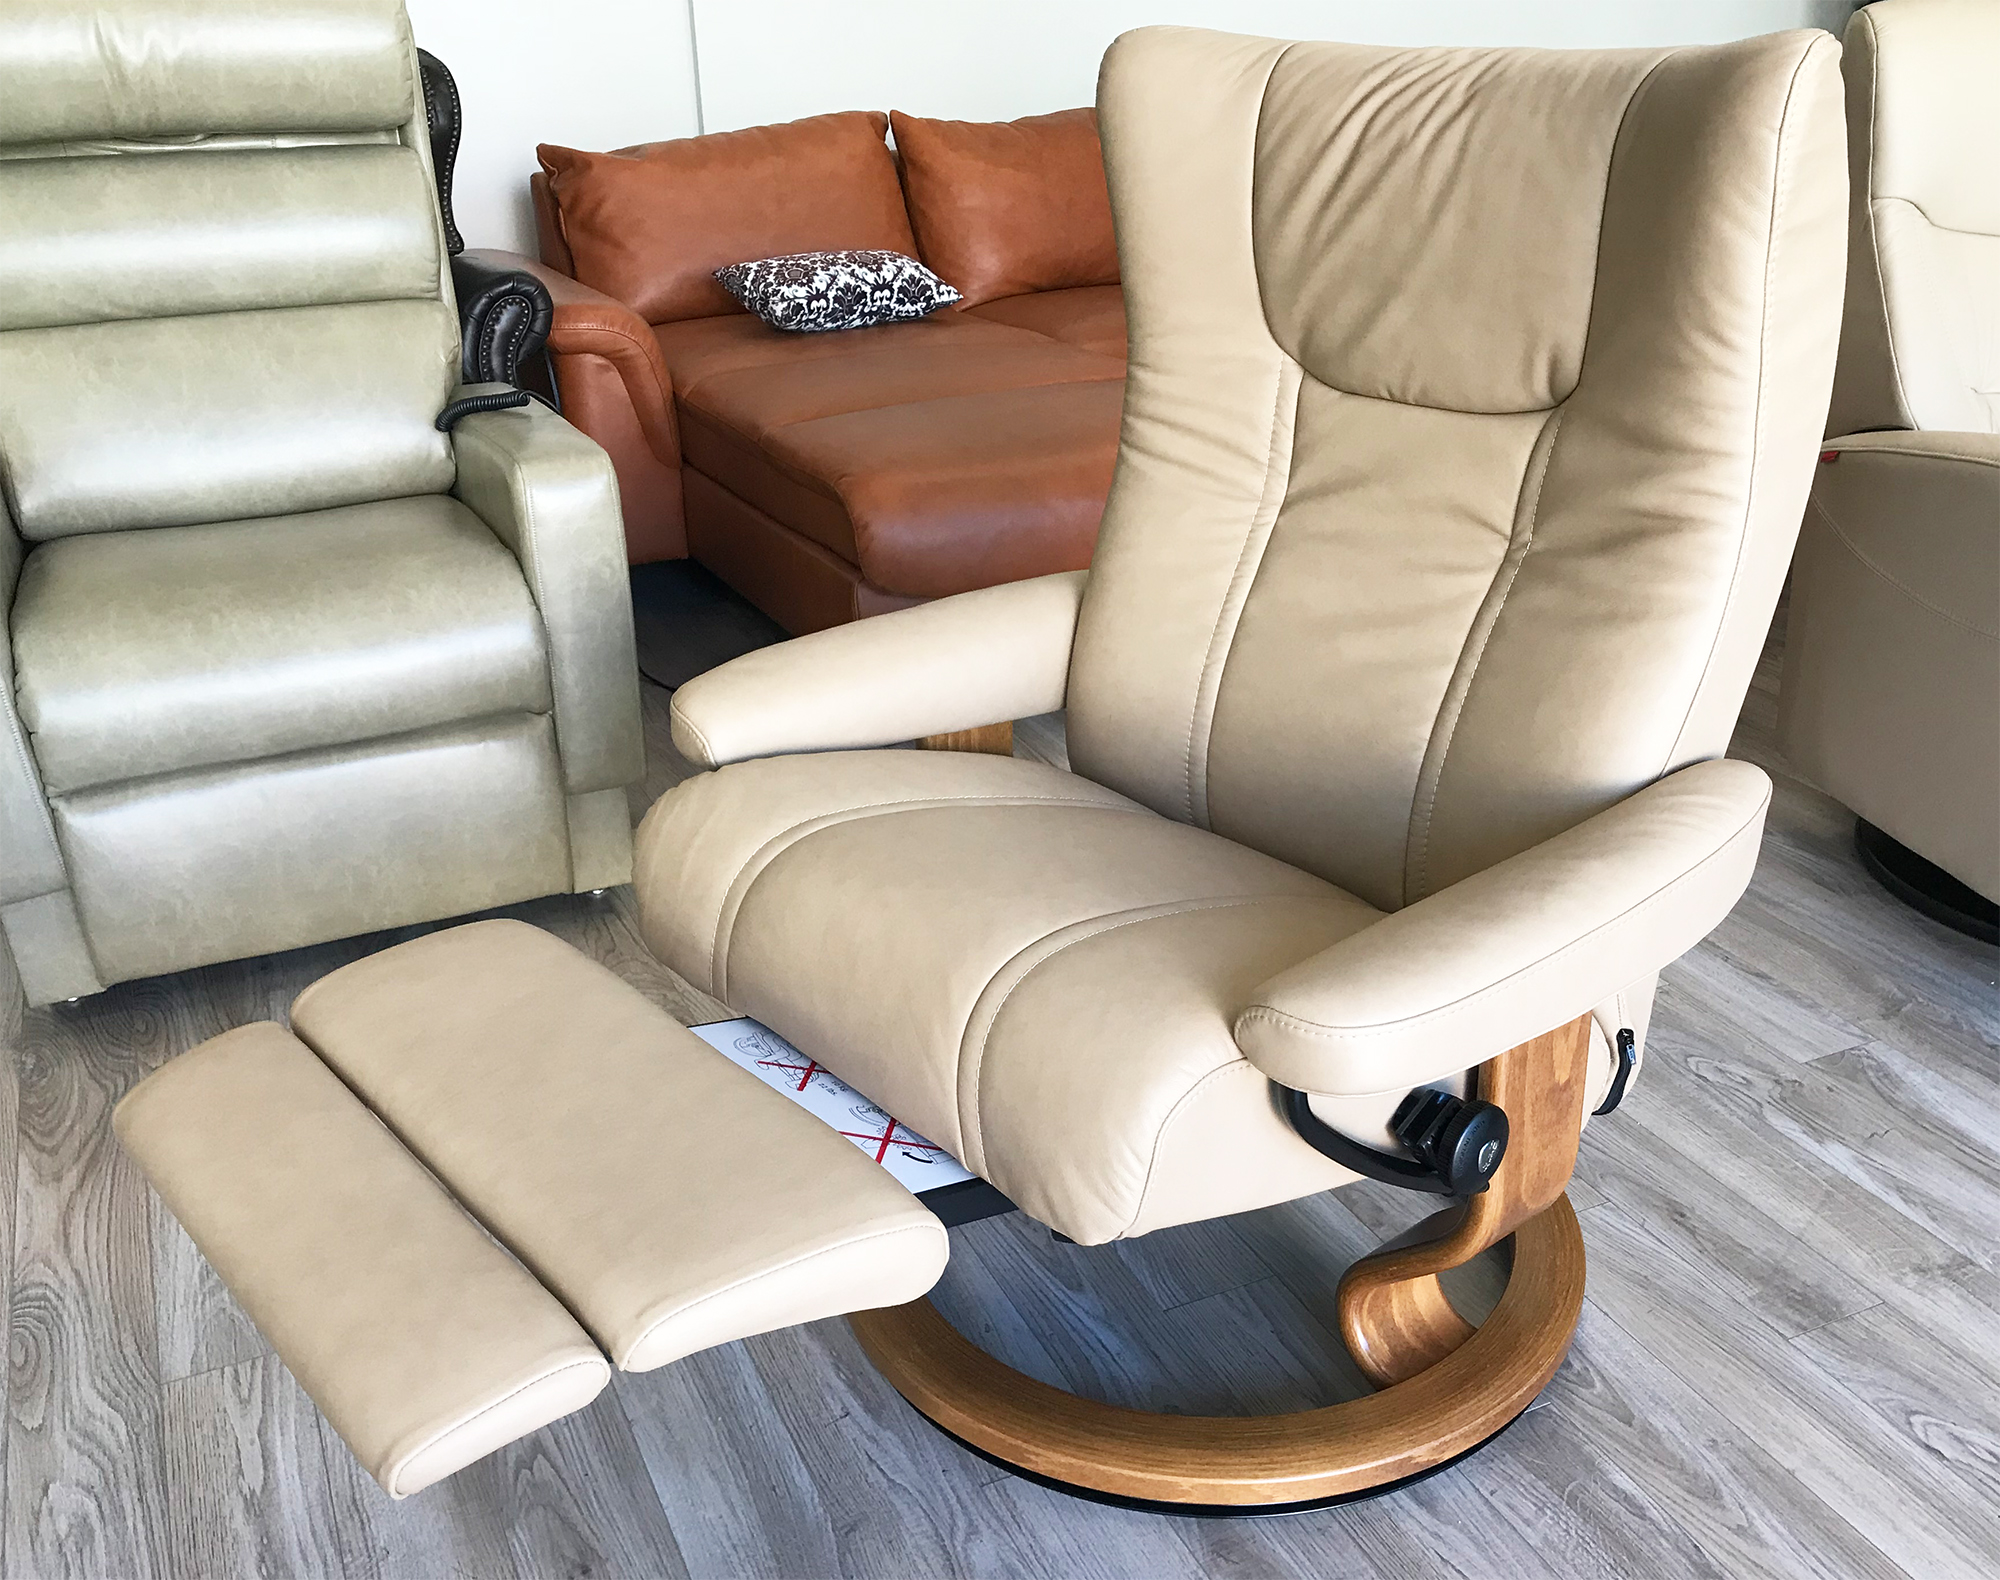 Picture of: Stressless Wing Leg Comfort Paloma Sand Leather Recliner Chair With Footrest By Ekornes Stressless Wing Leg Comfort Paloma Sand Leather Chairs Recliners